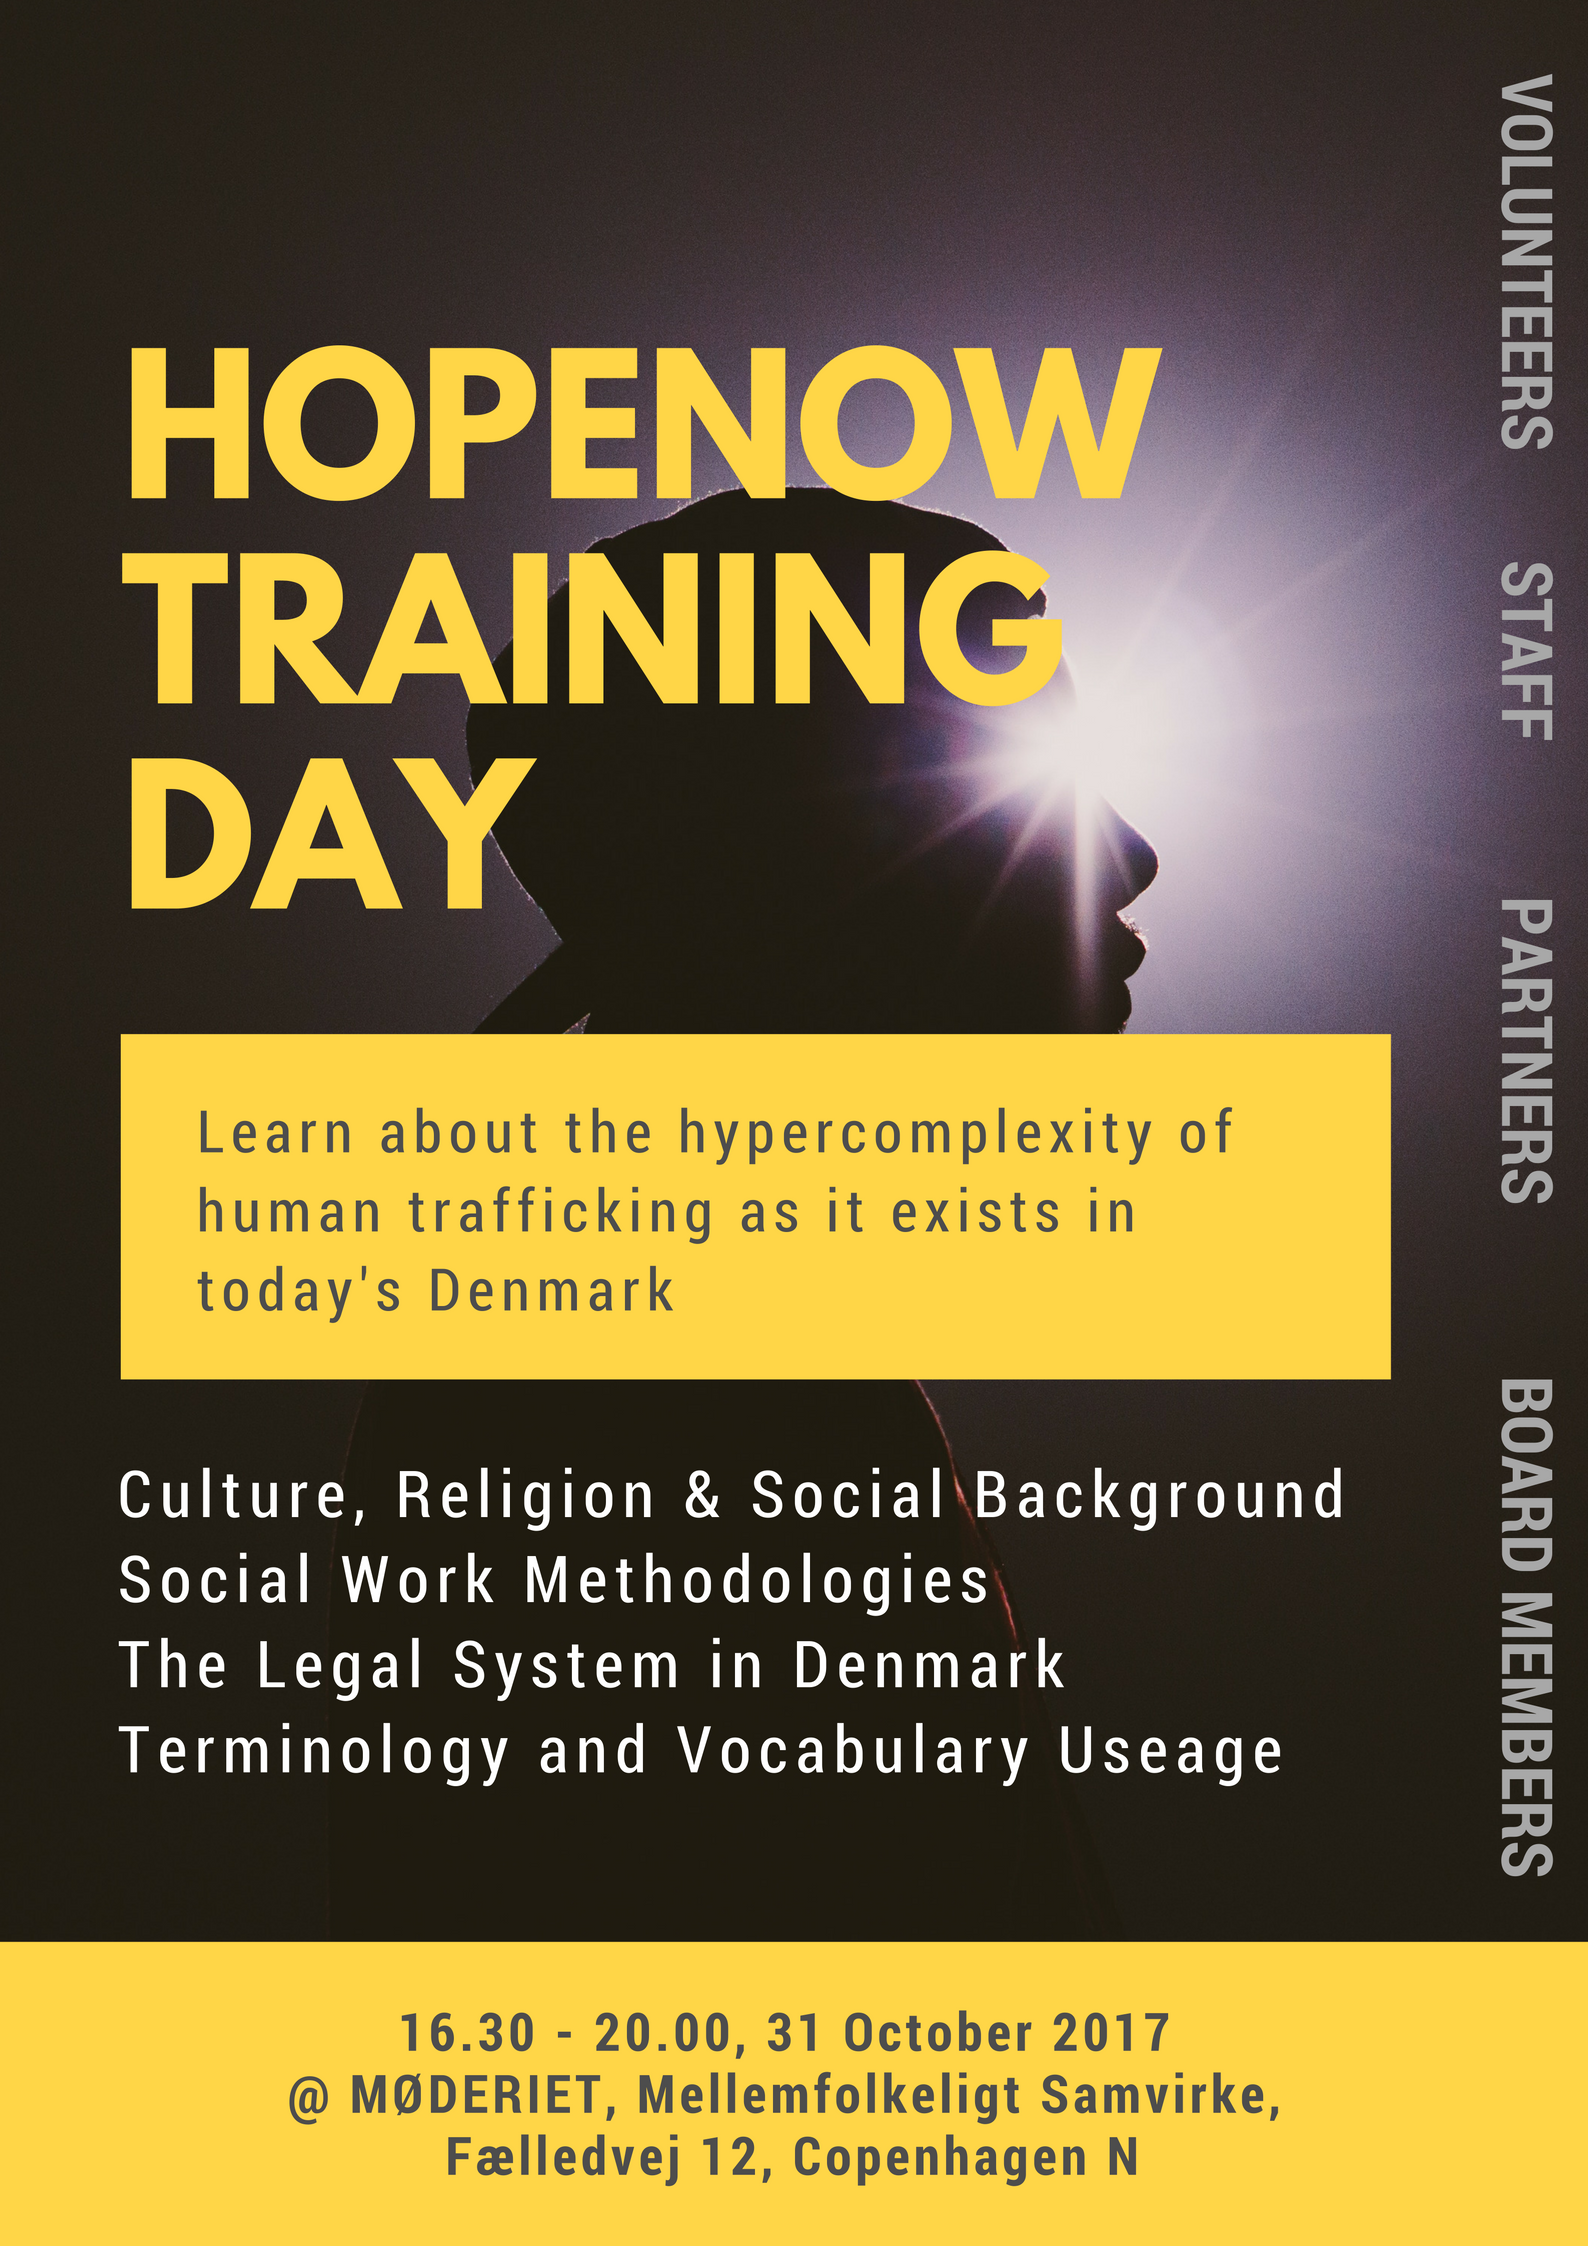 HopeNow Training Day